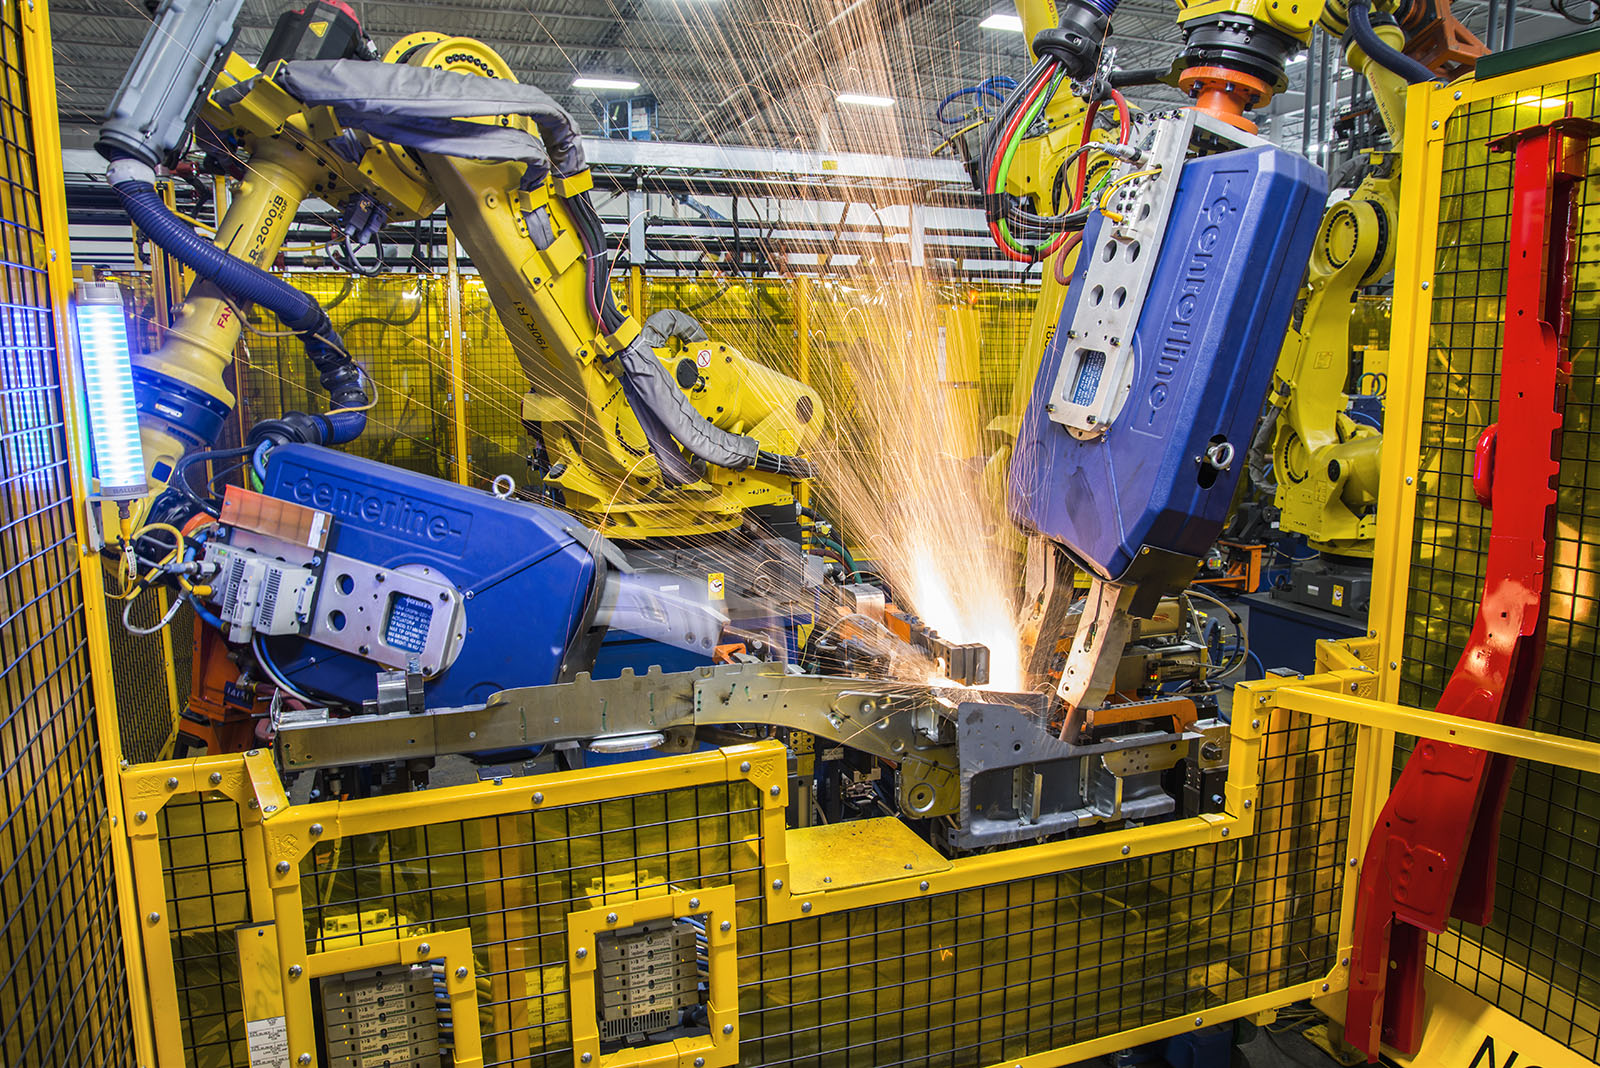 Robotic welder at Martinrae Automotive, Toronto